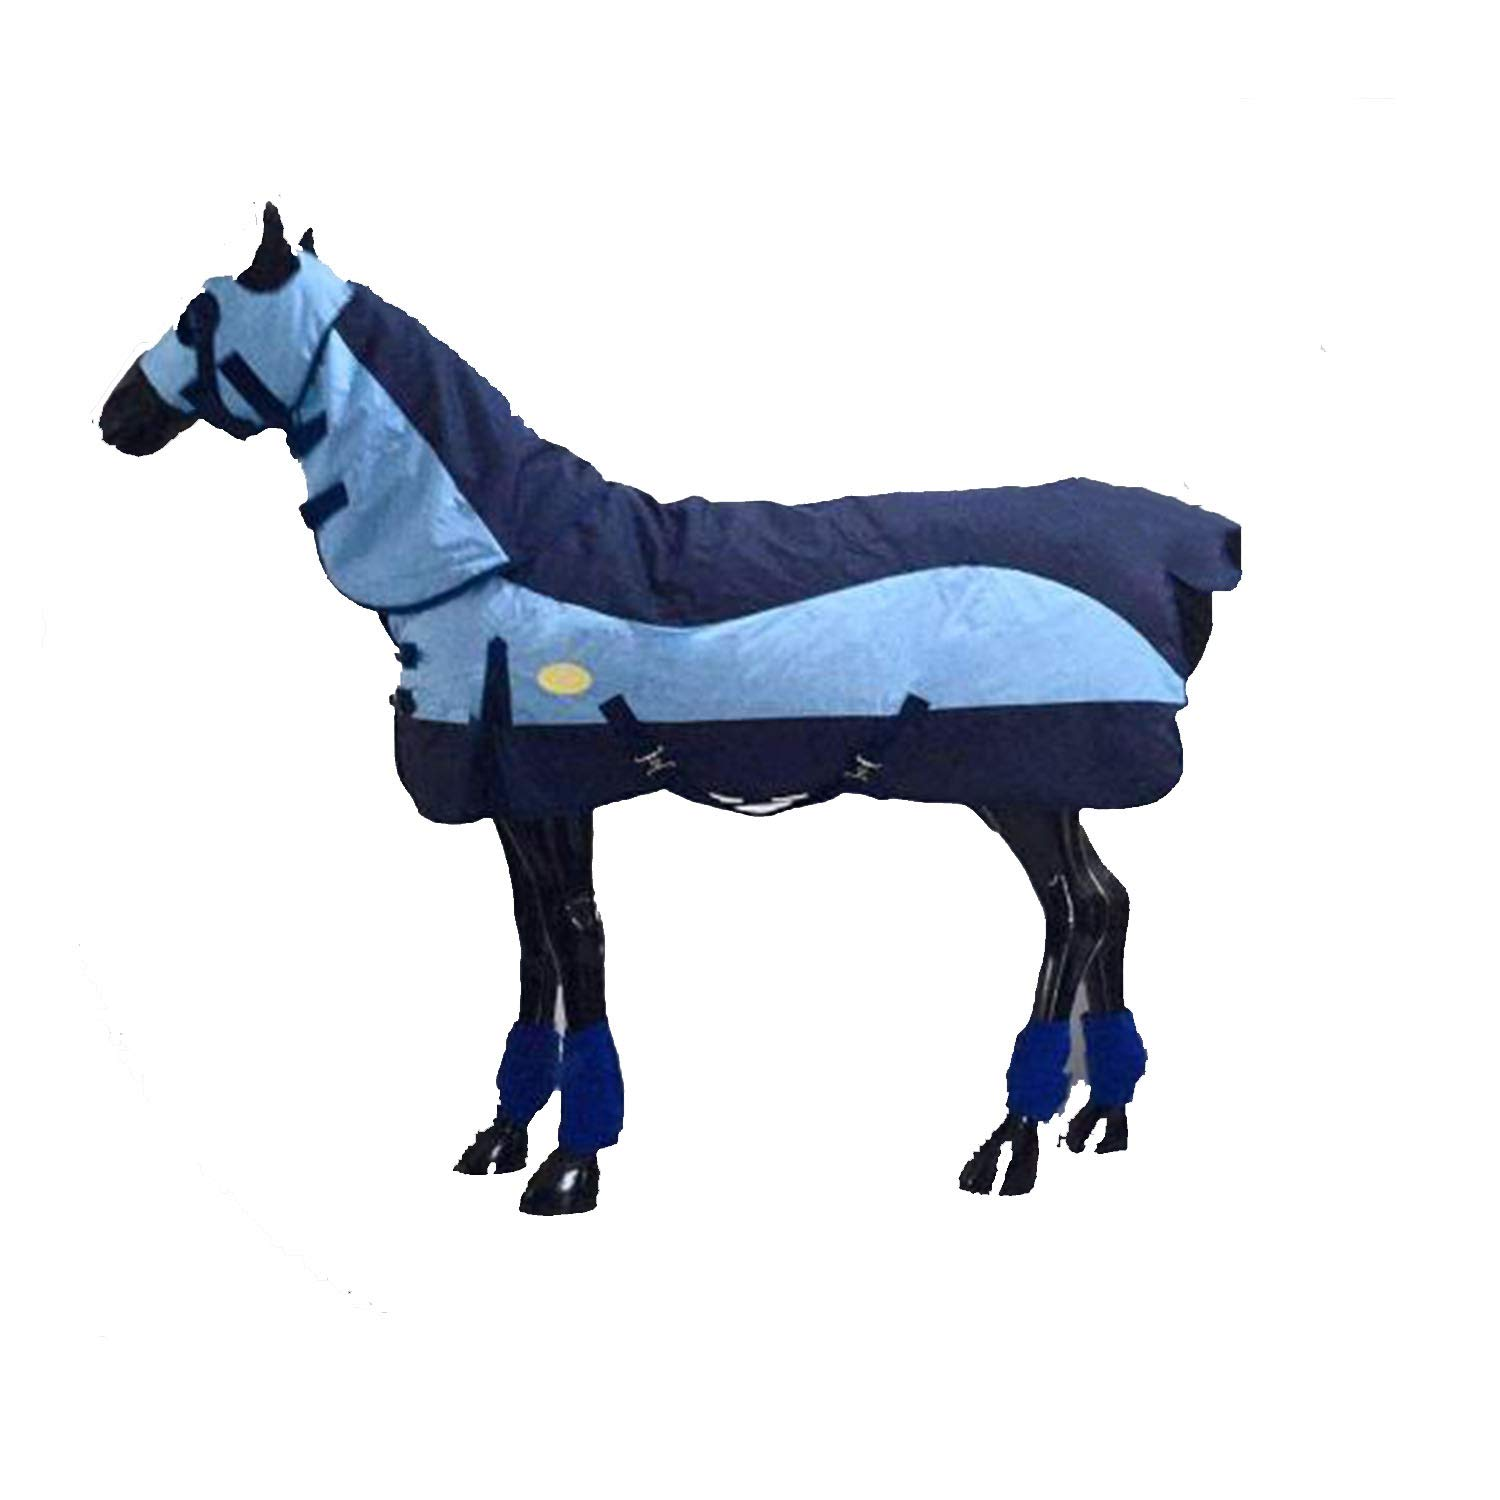 145cm Winter Horse Blanket with Hood, Down Fabric, Warm and Comfortable